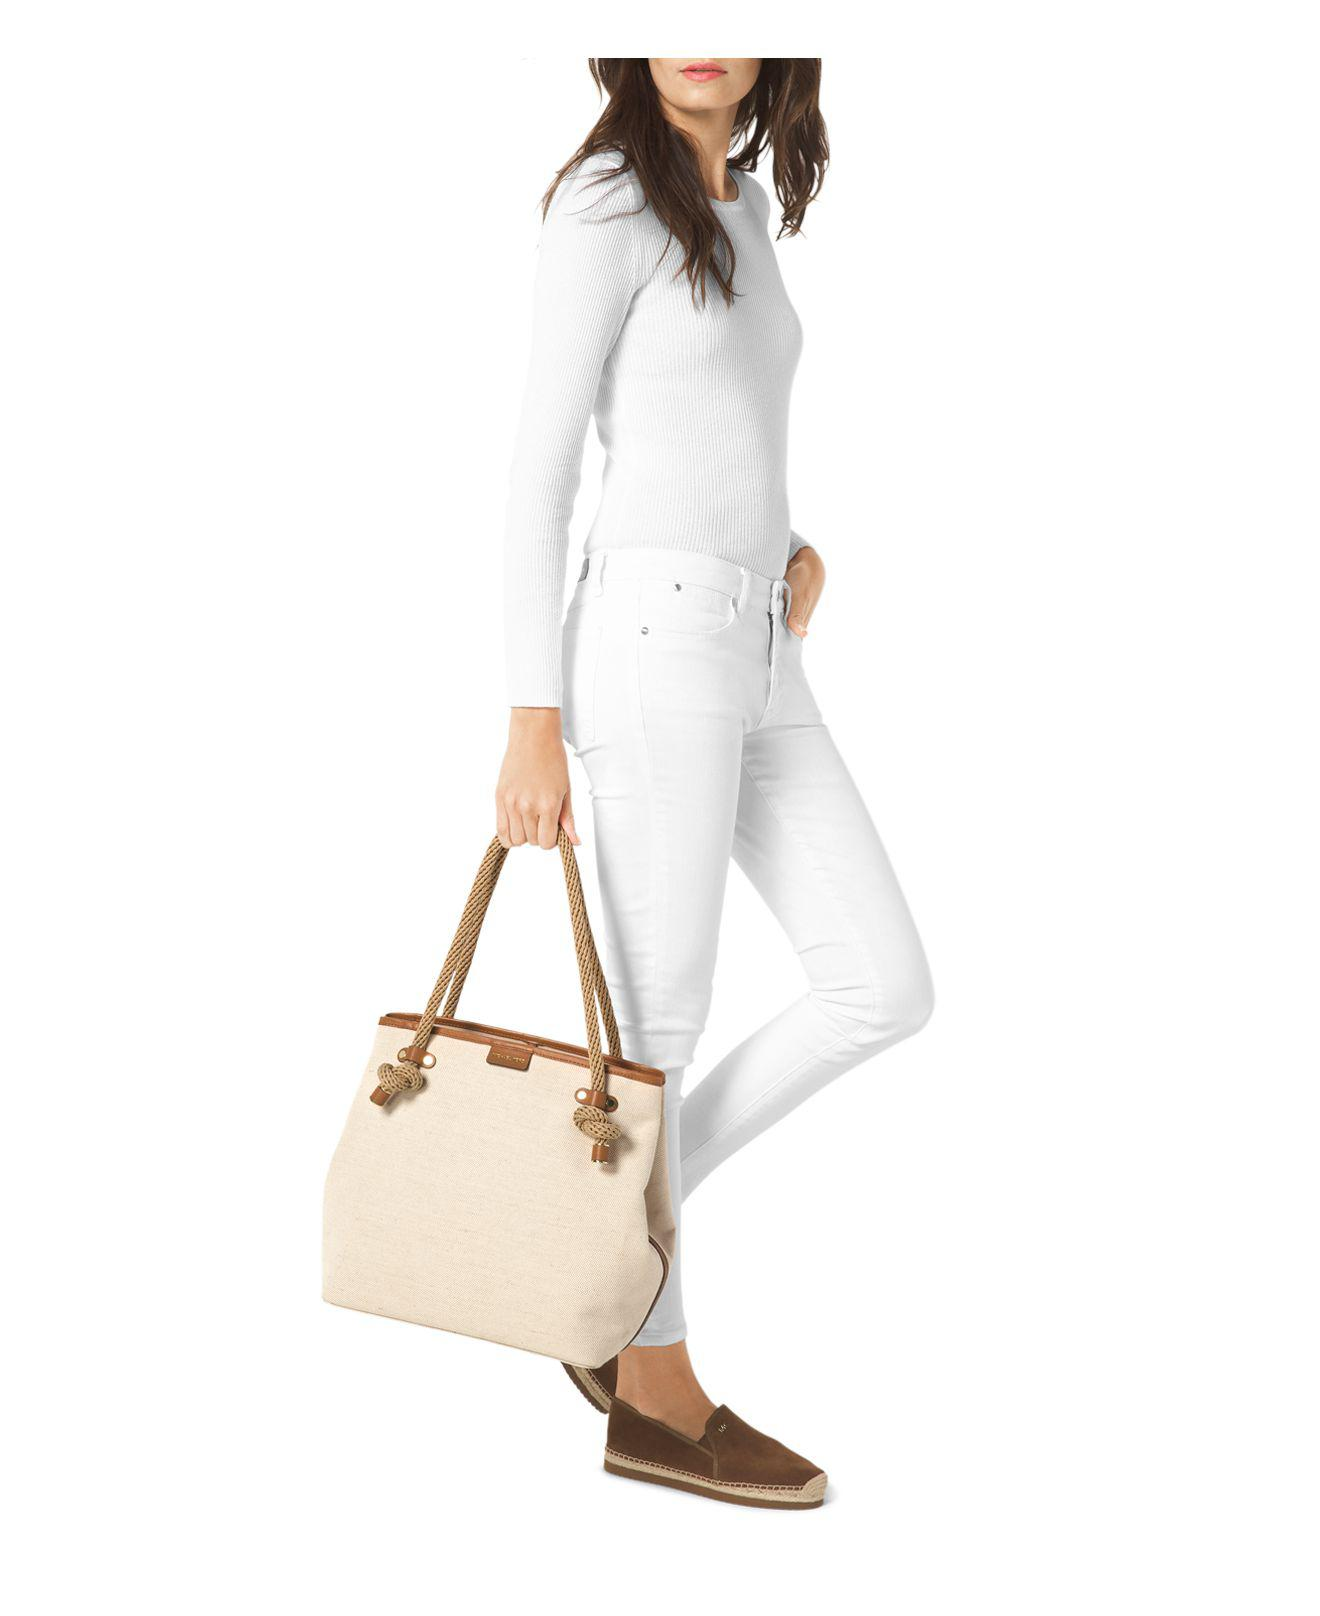 4a3009af0e4bb3 Gallery. Previously sold at: Bloomingdale's · Women's Beach Bags